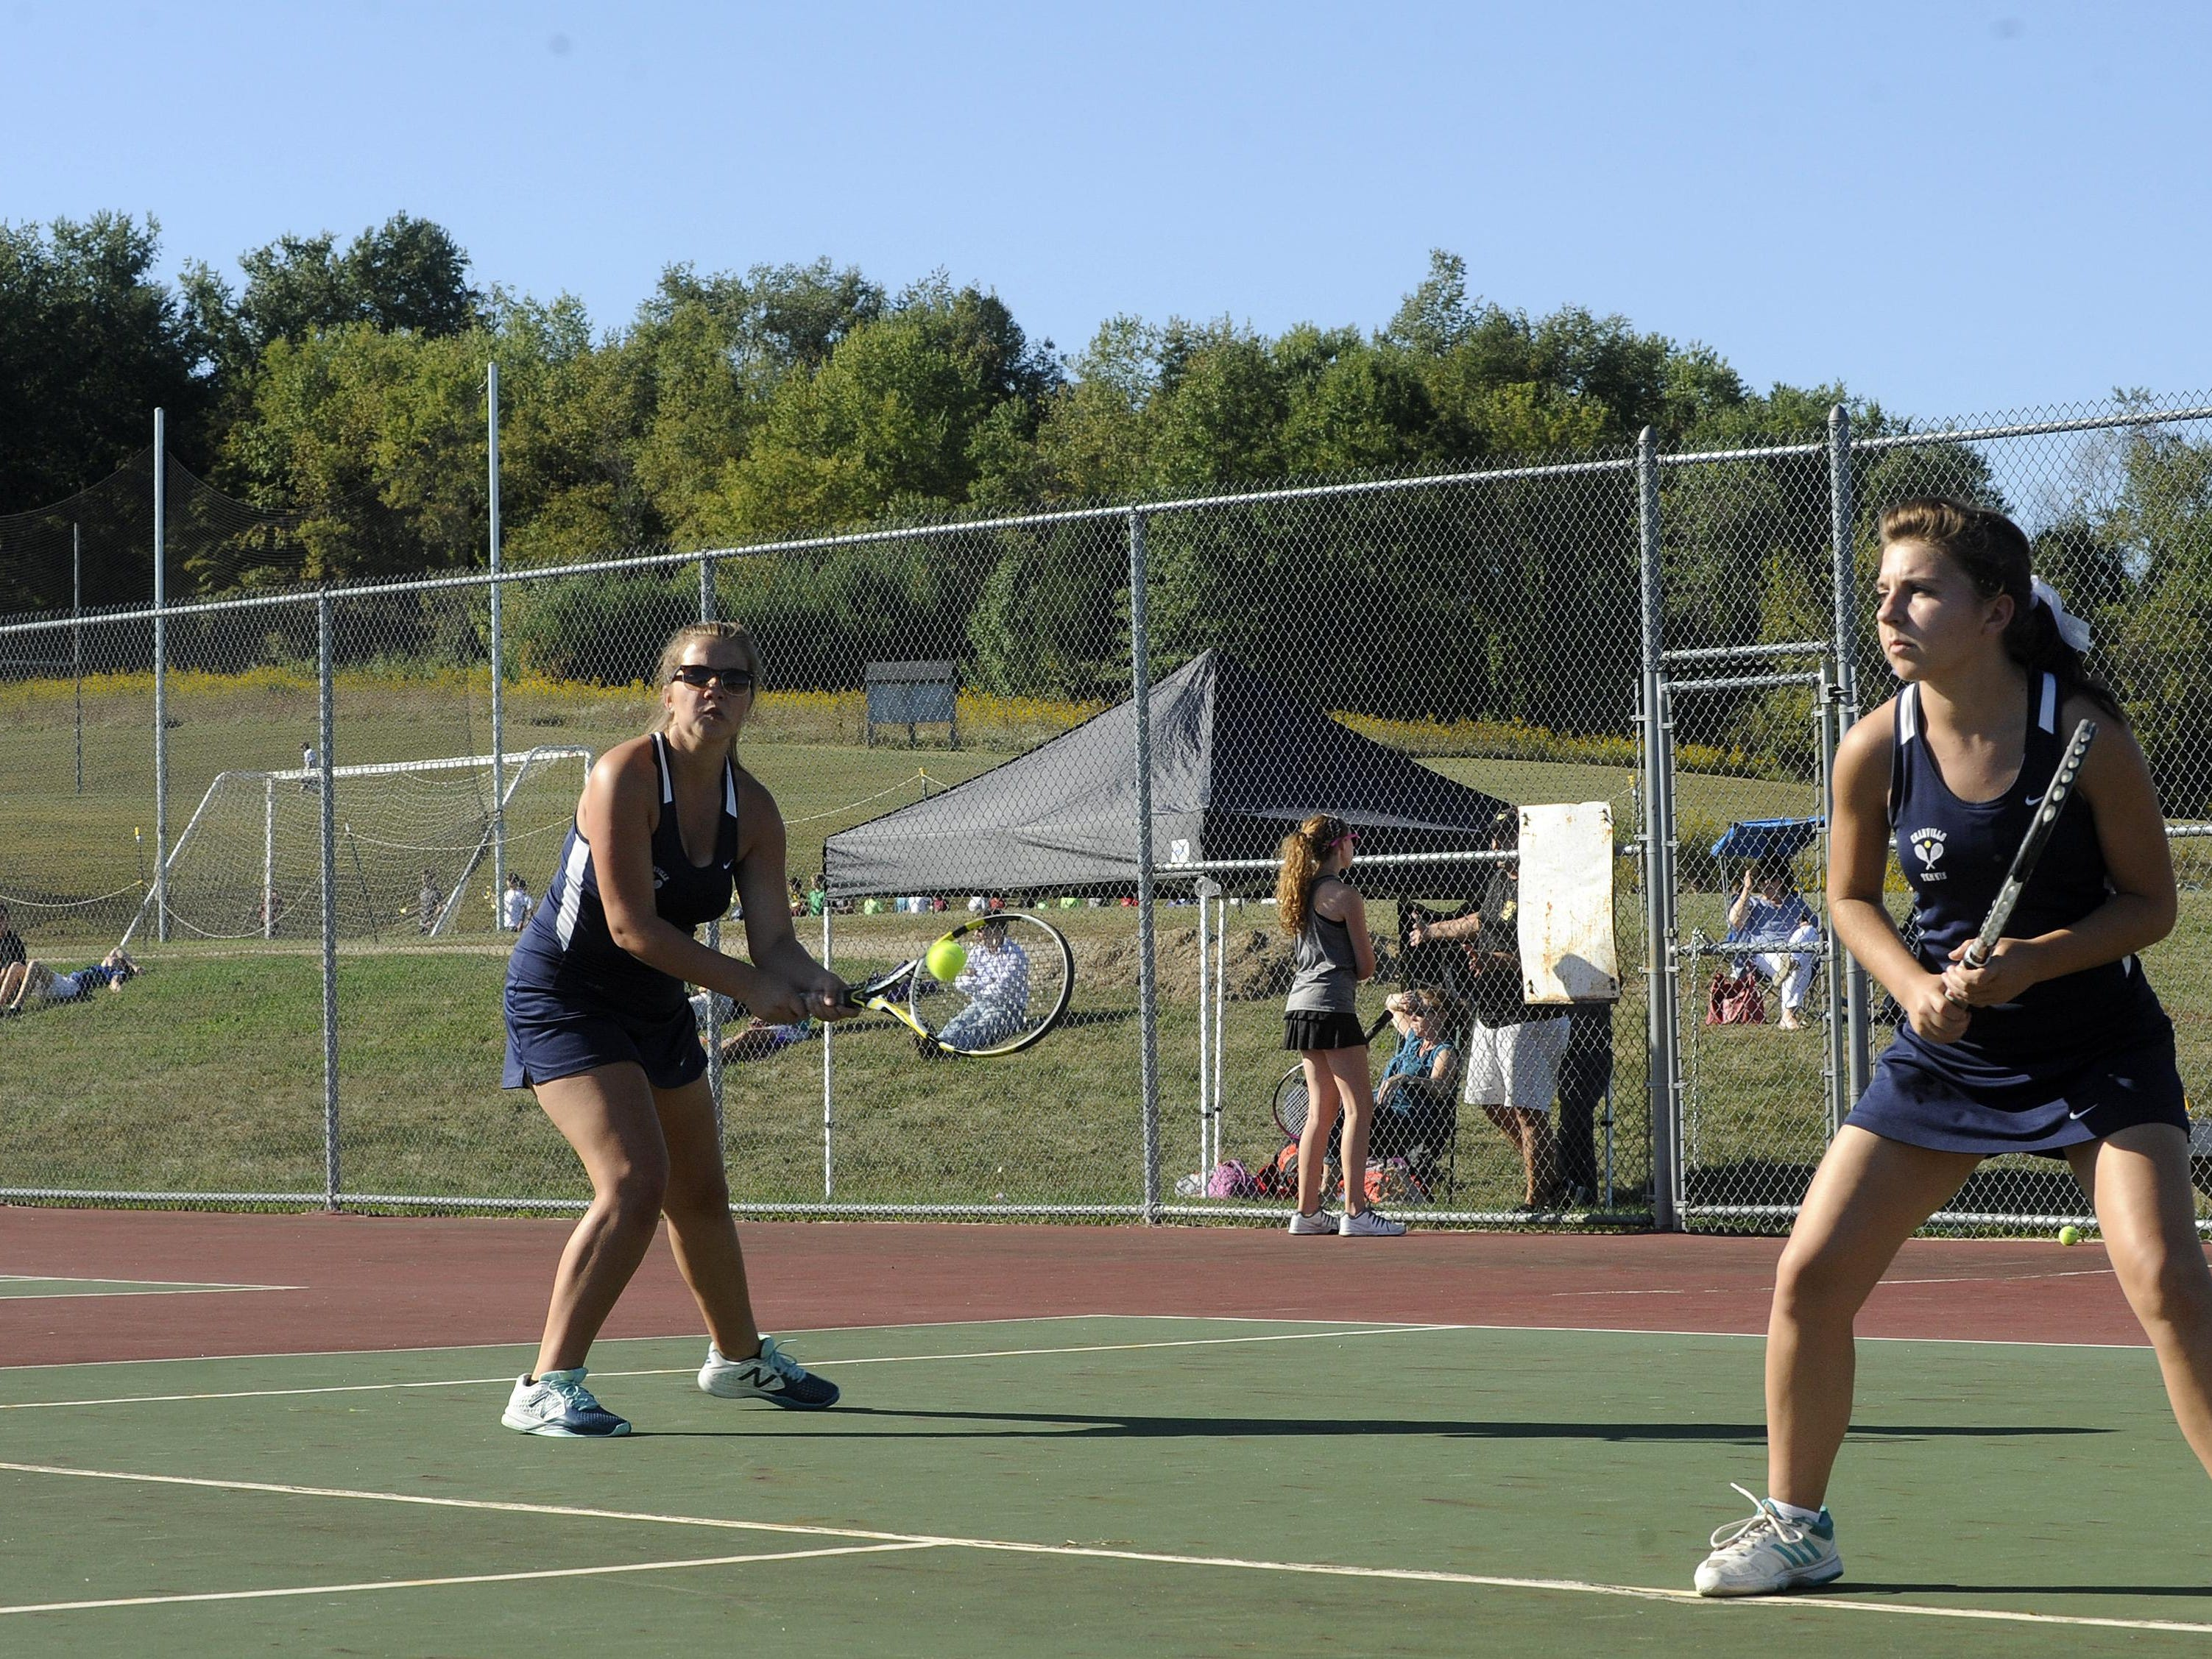 Granville senior captains Abbey Wells and Sarah Charlton play in a No. 1 doubles match against Watkins Memorial's Dolen Helwagen and Aubry Pletcher on Monday at Granville.